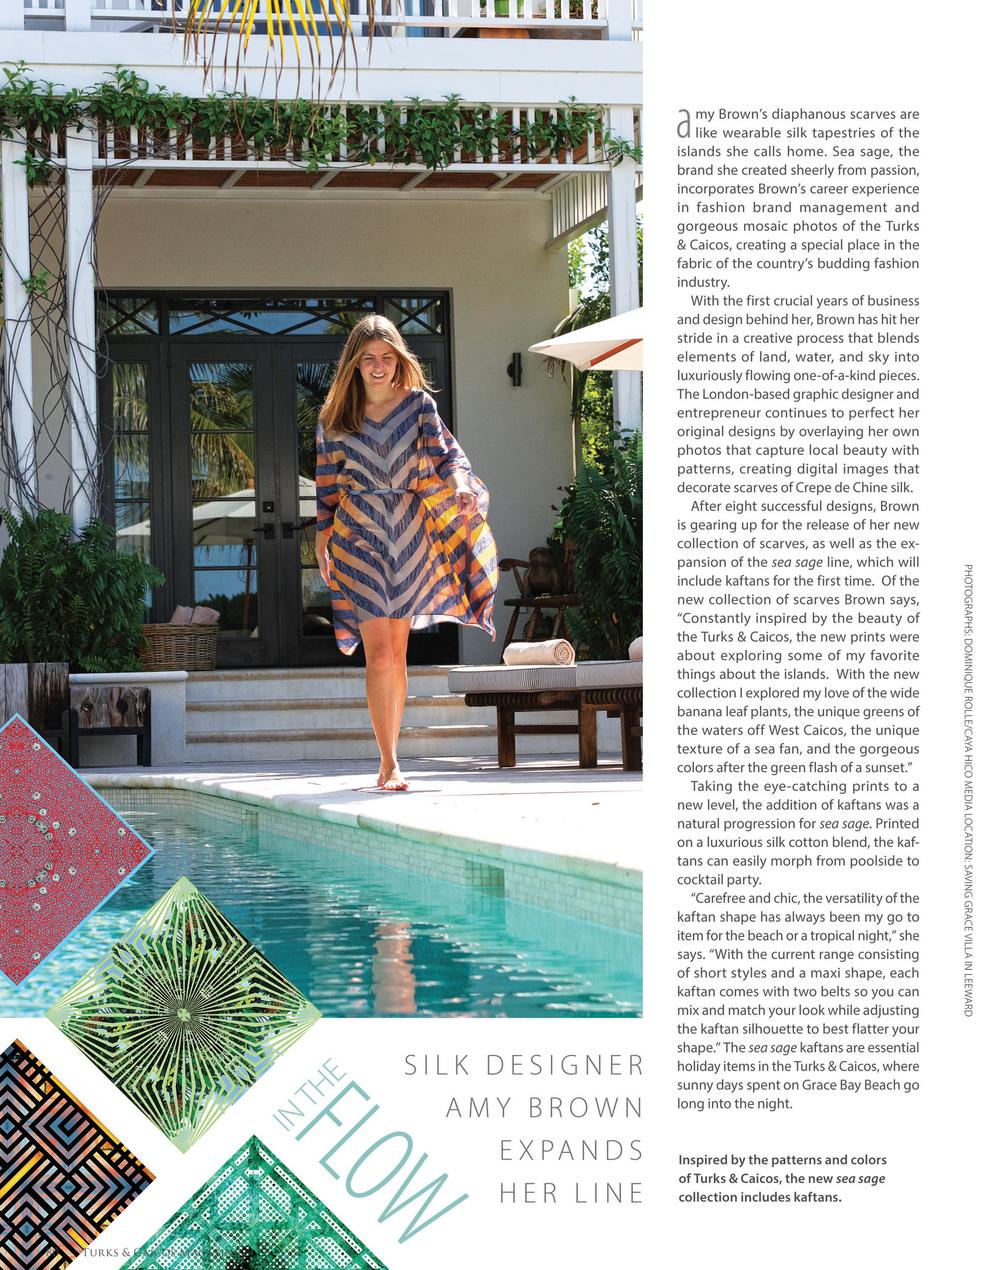 sea-sage-turks-and-caicos-magazine-sunset-kaftan-resortwear-luxury-villa-saving-grace